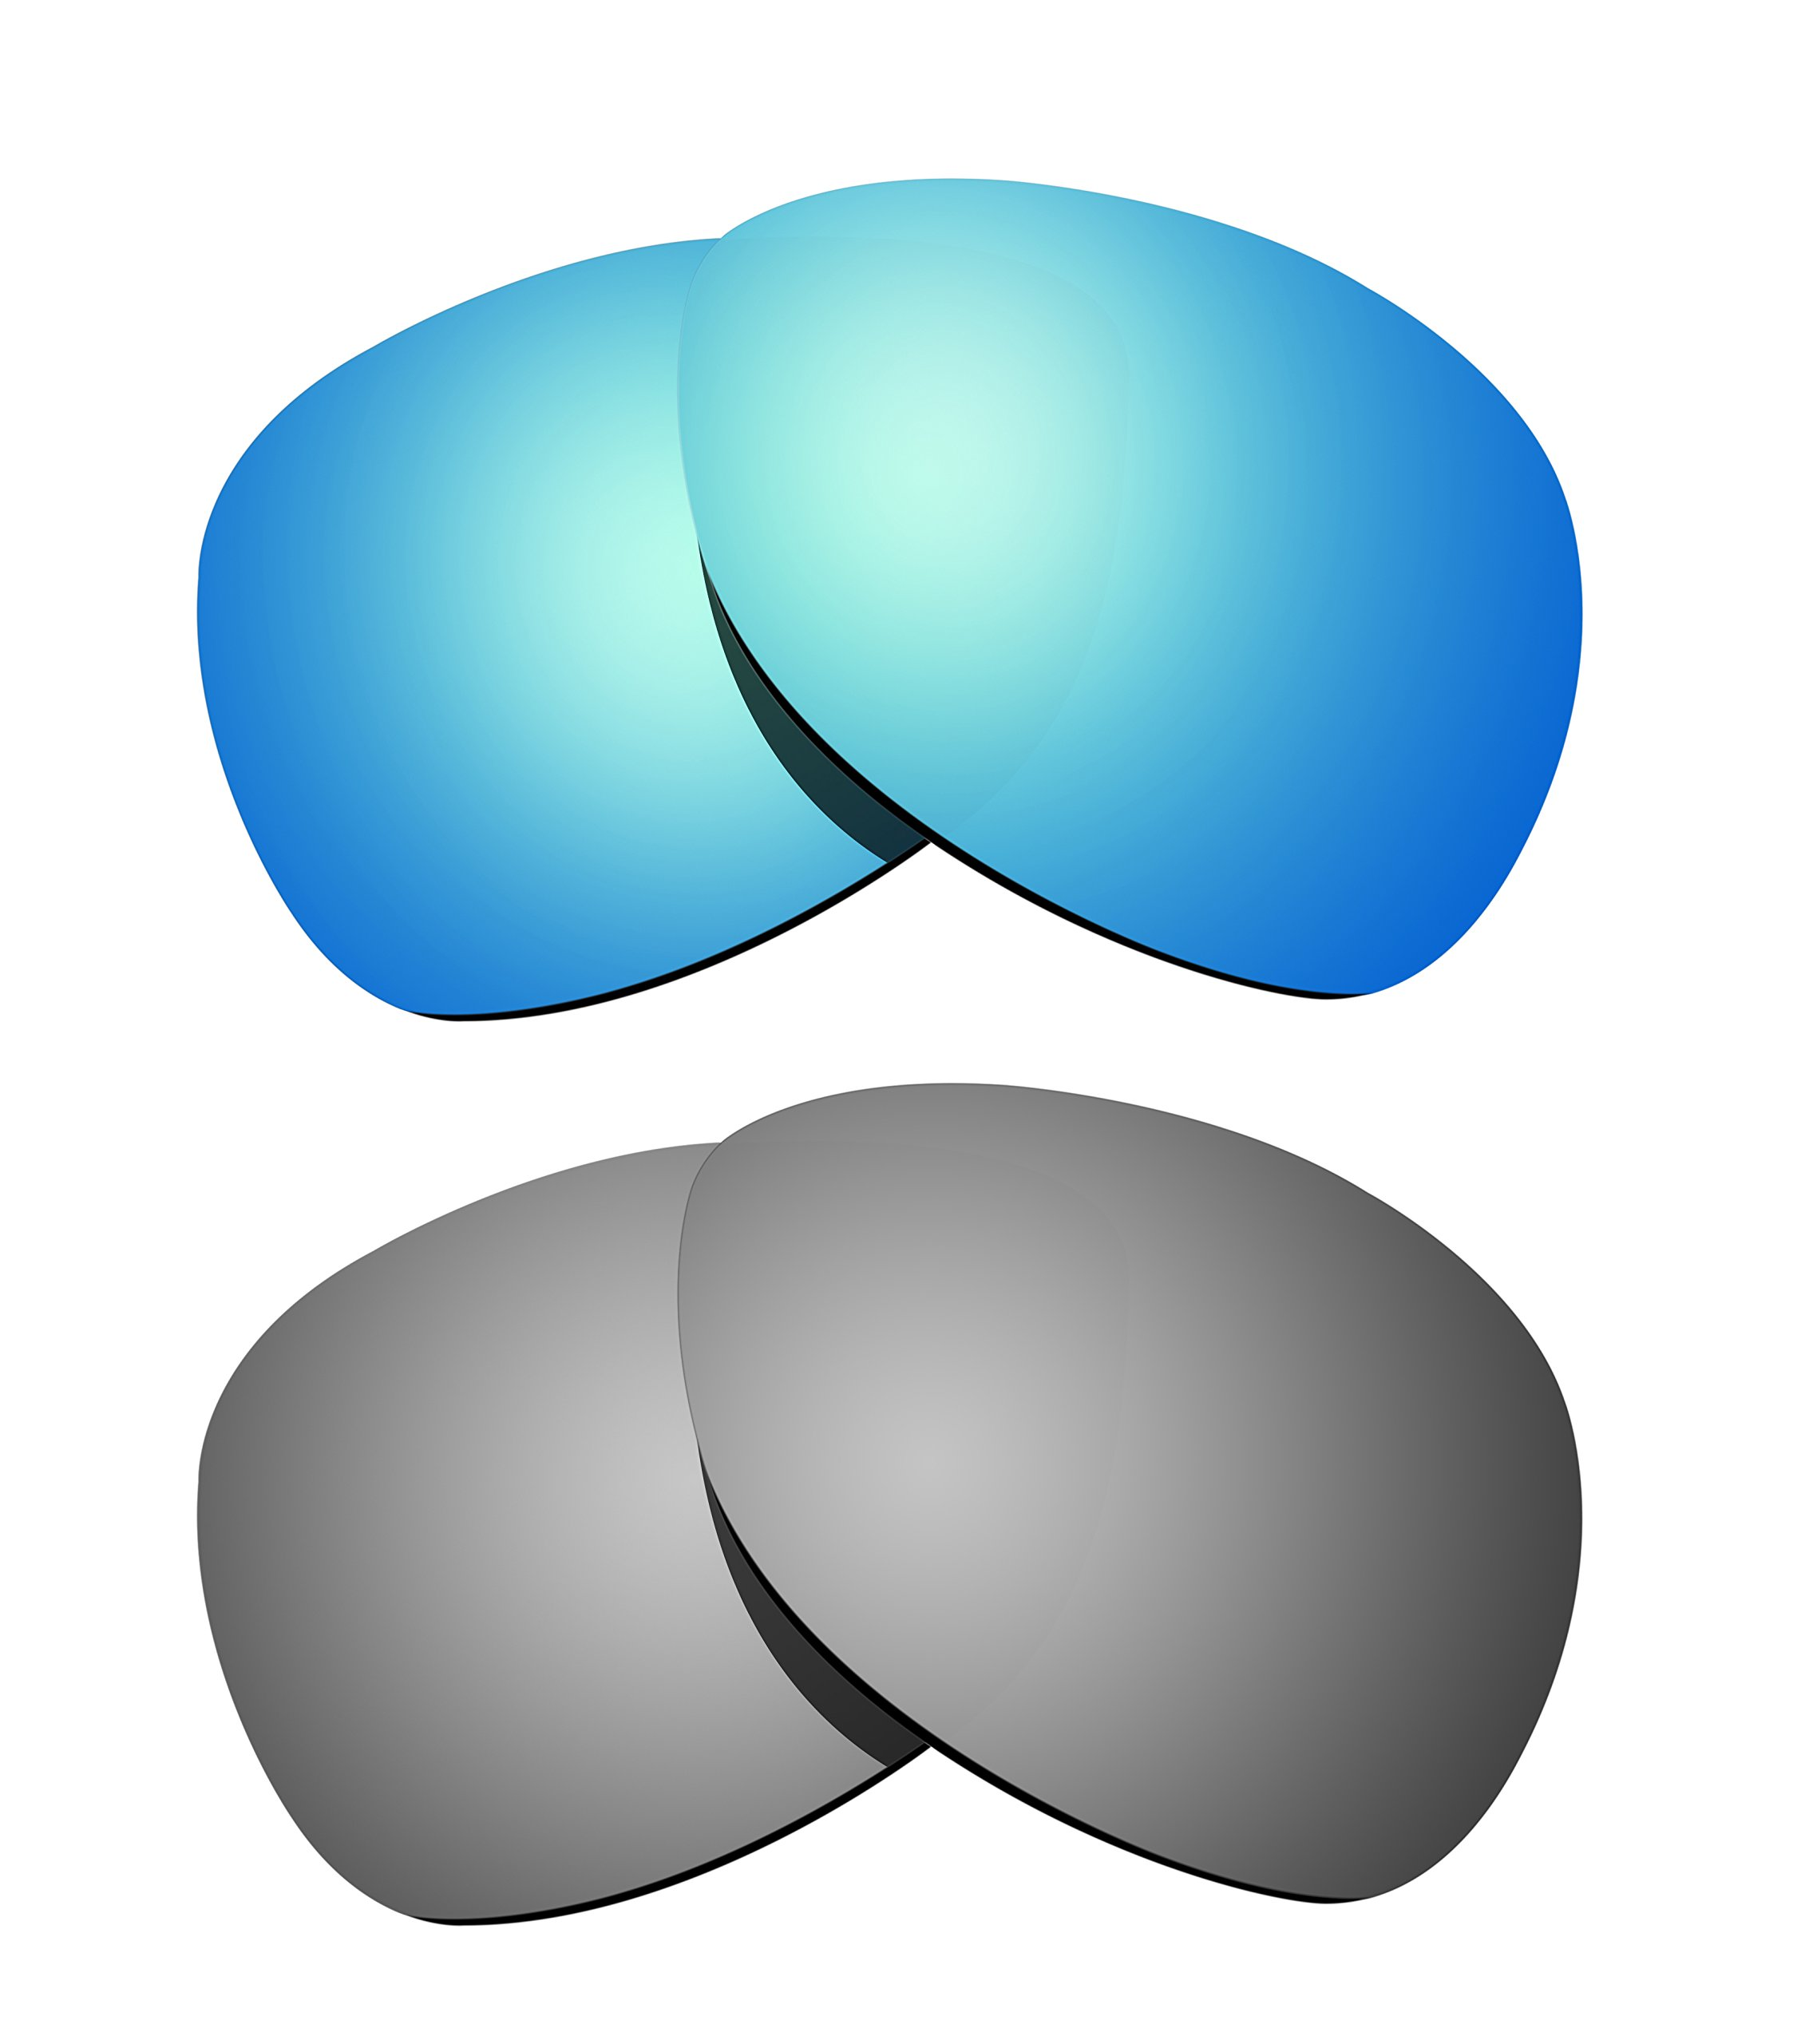 Littlebird4 2 Pairs 1.5mm Polarized Replacement Lenses for Oakley Crosshair Sunglasses - Multiple Options (Silver+Ice Blue) by Littlebird4 (Image #1)